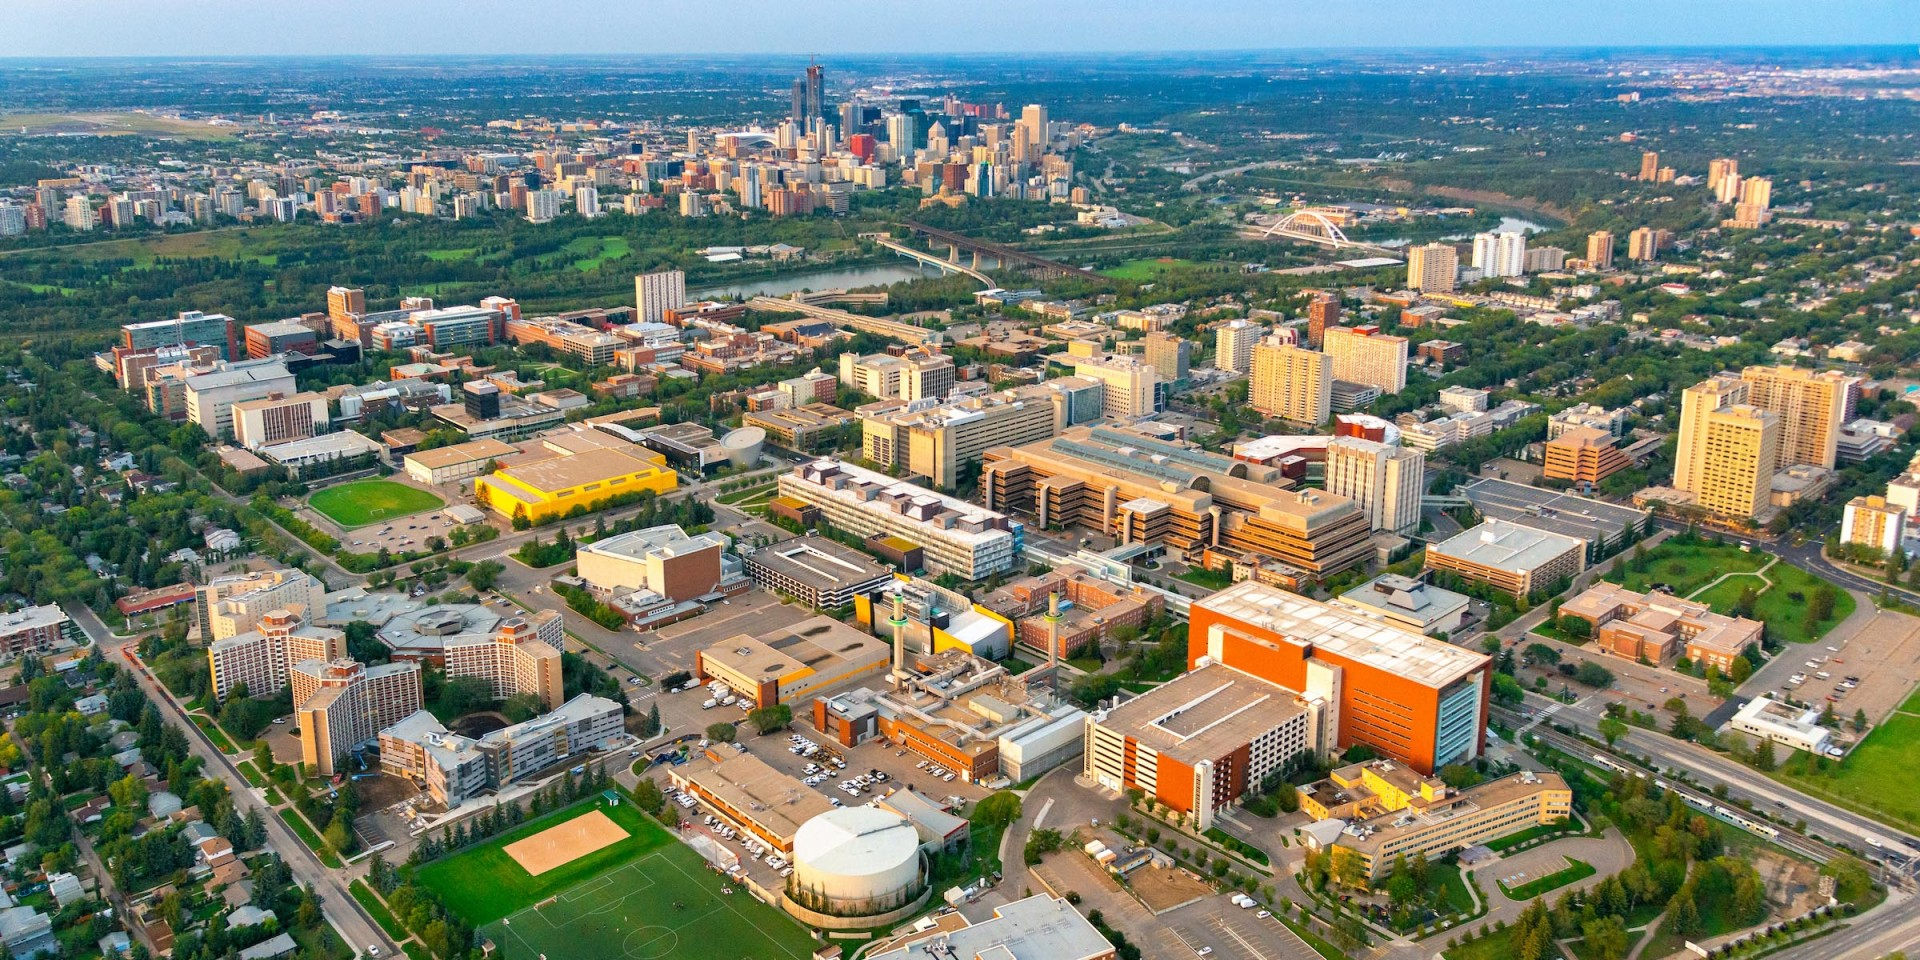 The U of A will host to more than 8,000 social science and humanities academics from May 29 to June 4, 2021. The conference is expected to generate $16 million in economic benefits to the region.